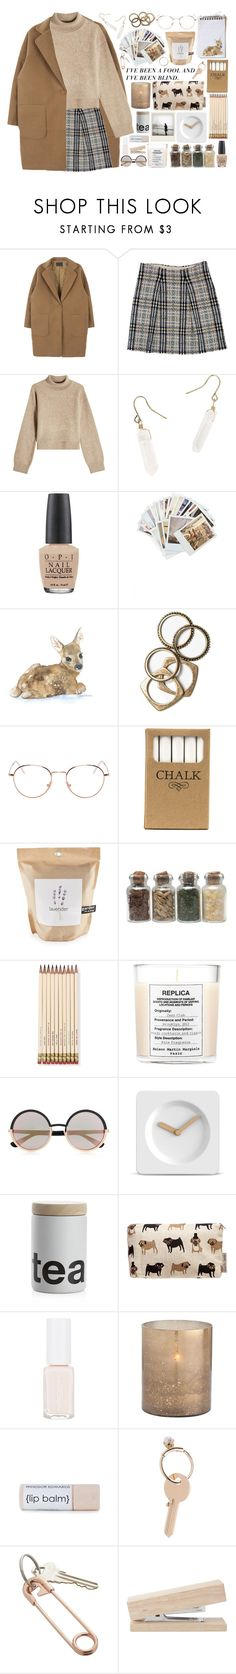 """It's always darkest before the dawn"" by hannah-gw-martin ❤ liked on Polyvore featuring Burberry, Rejina Pyo, Hot Topic, OPI, Chronicle Books, Rachel Leigh, RetroSuperFuture, Jayson Home, Potting Shed Creations and Kate Spade"